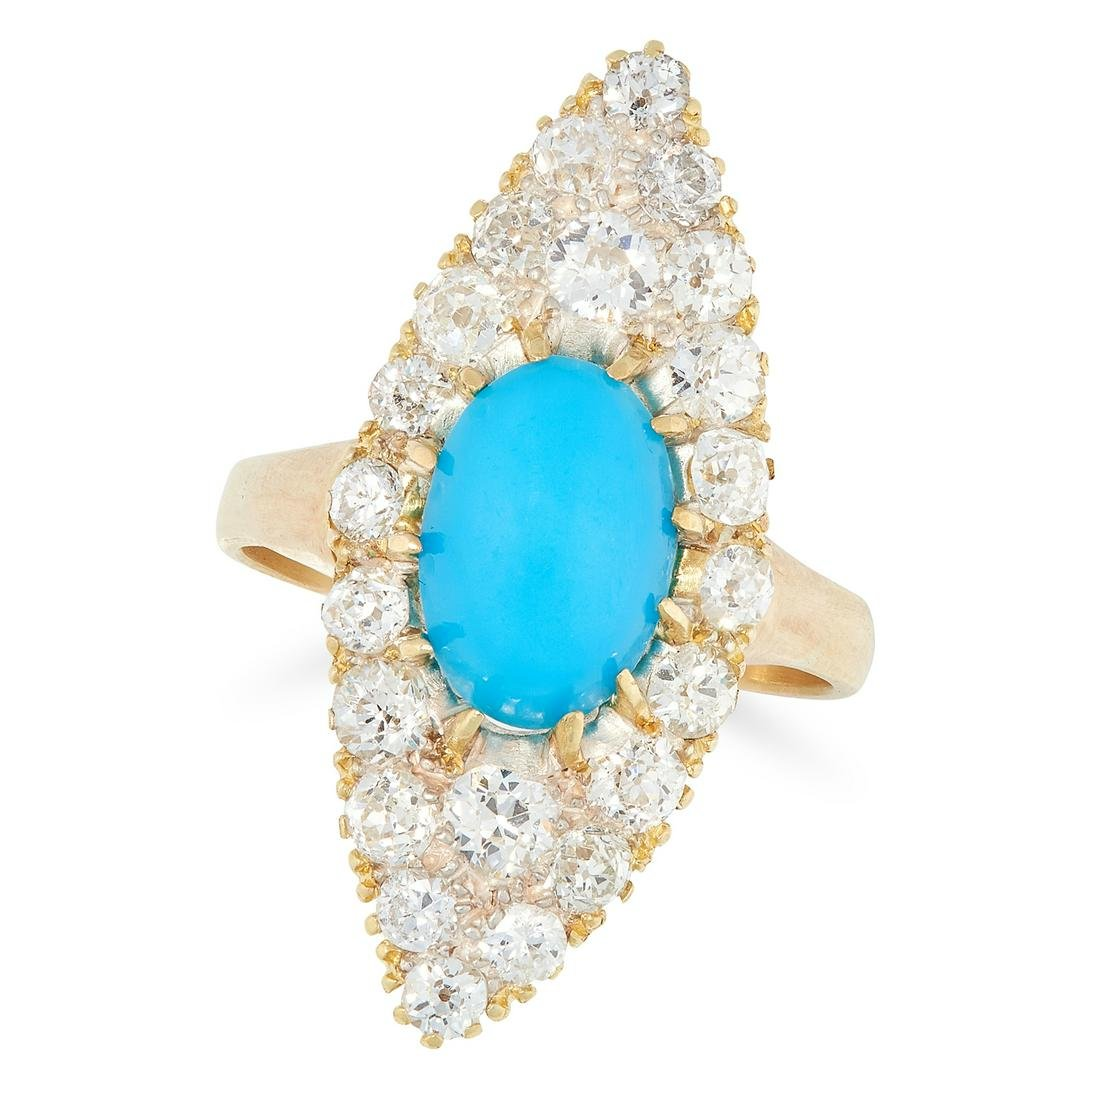 A TURQUOISE AND DIAMOND NAVETTE RING set with a central